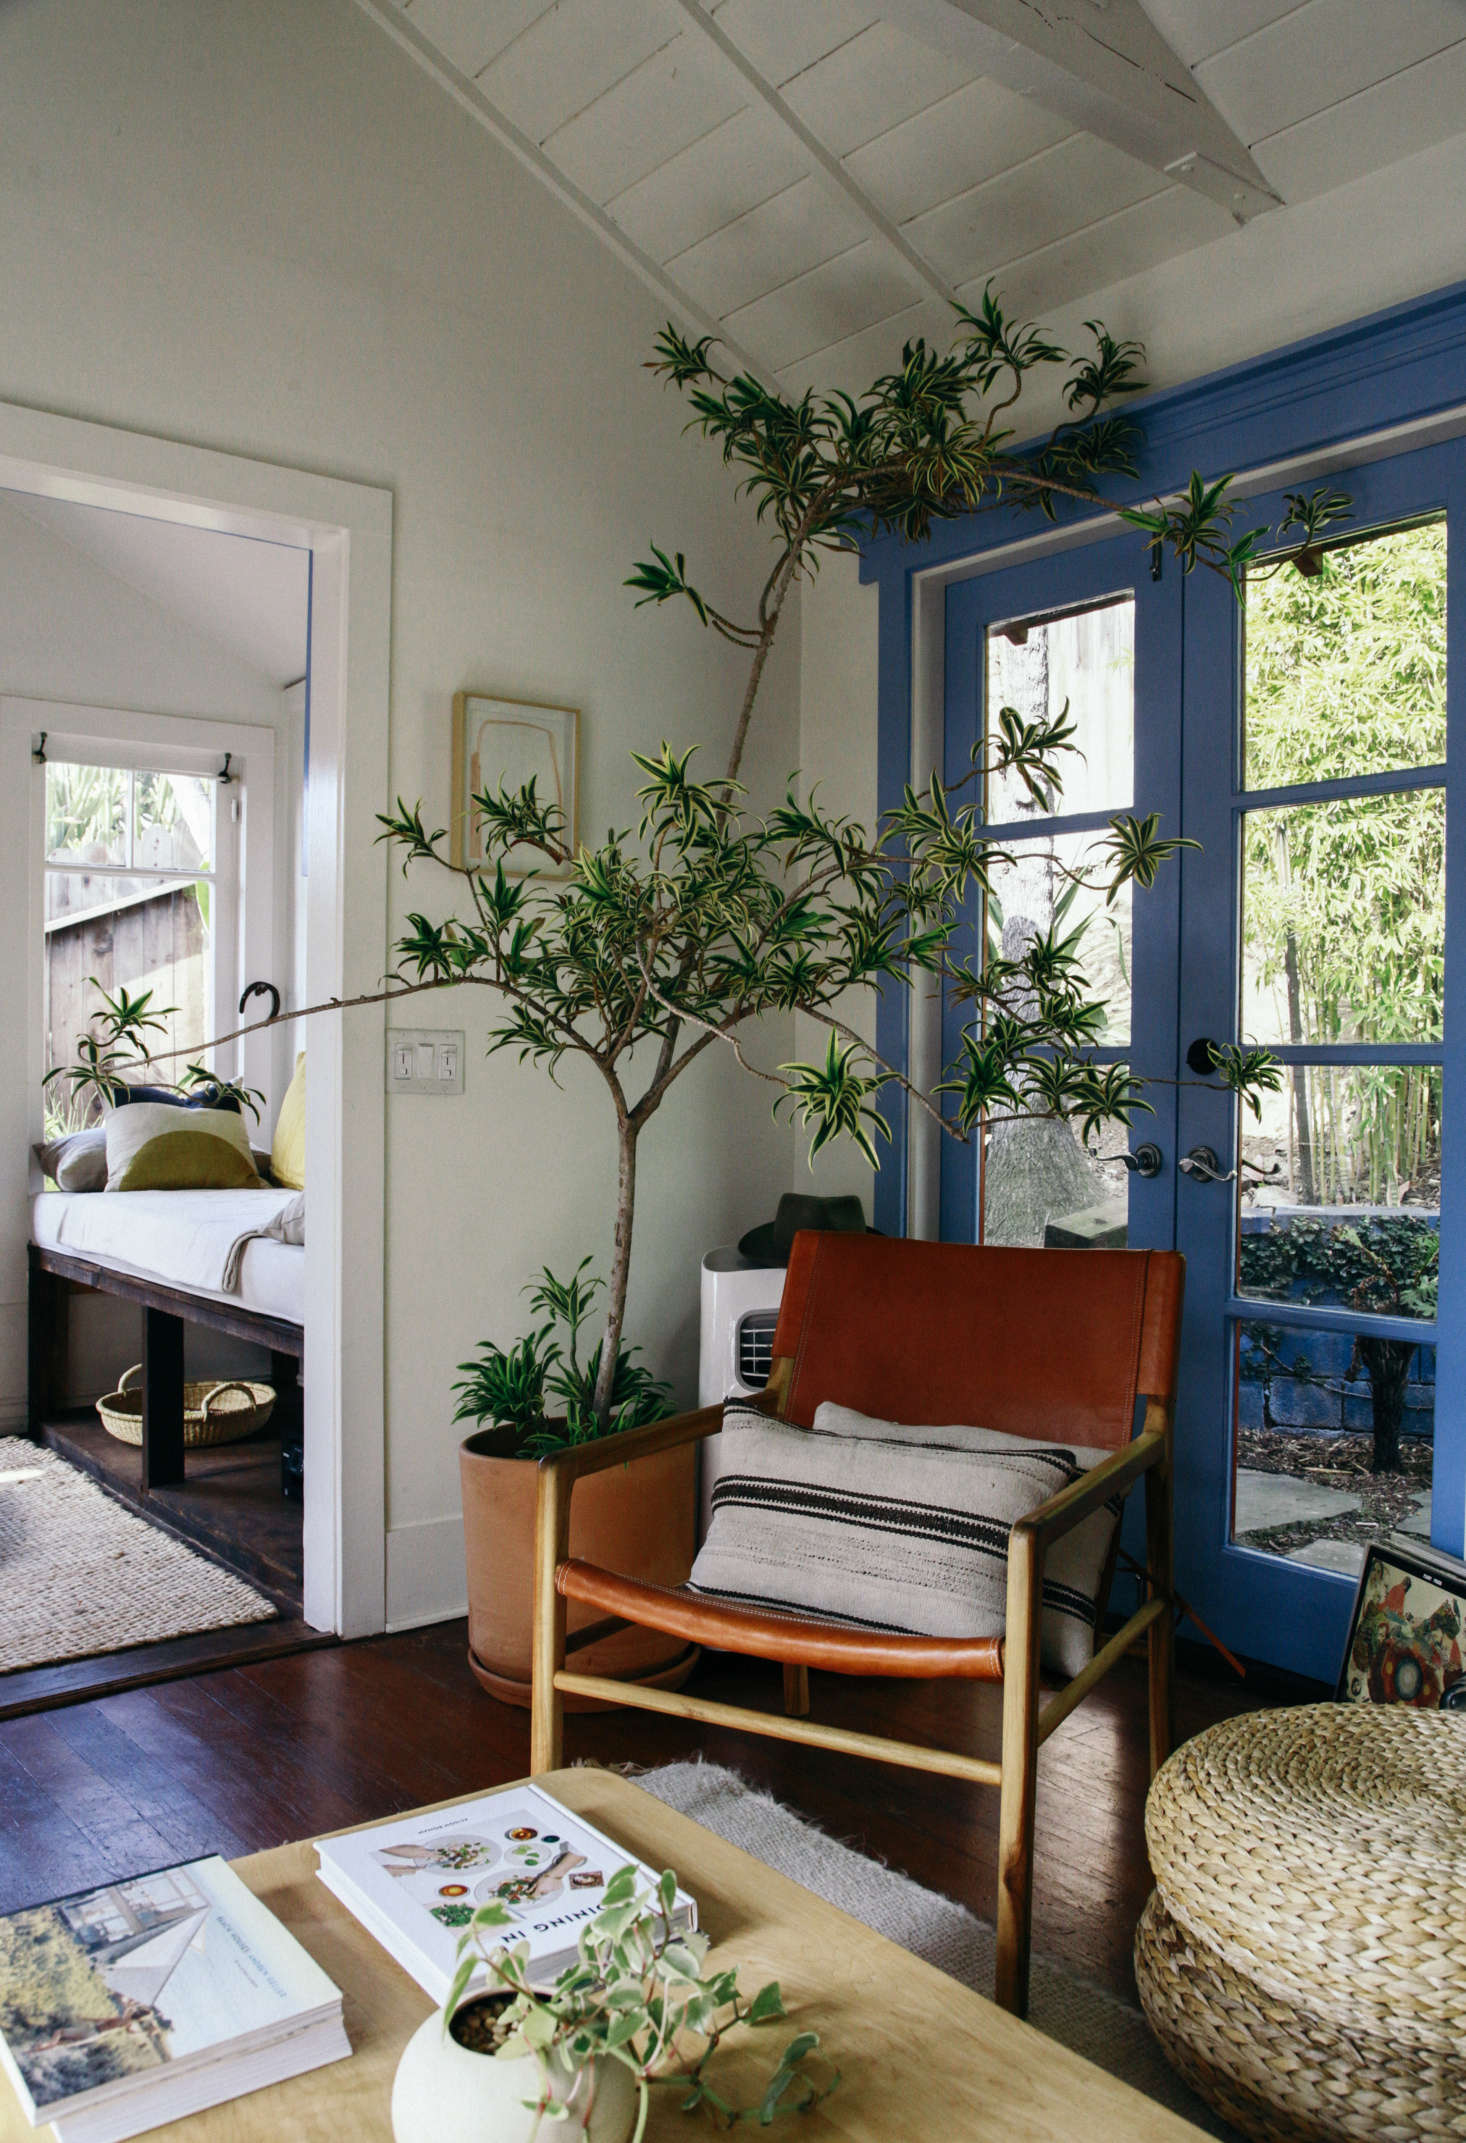 Every plant is unique, which makes them great for customizing a rental. Jodi and Alex placed plants of varying sizes and textures in ceramics pots throughout the house.